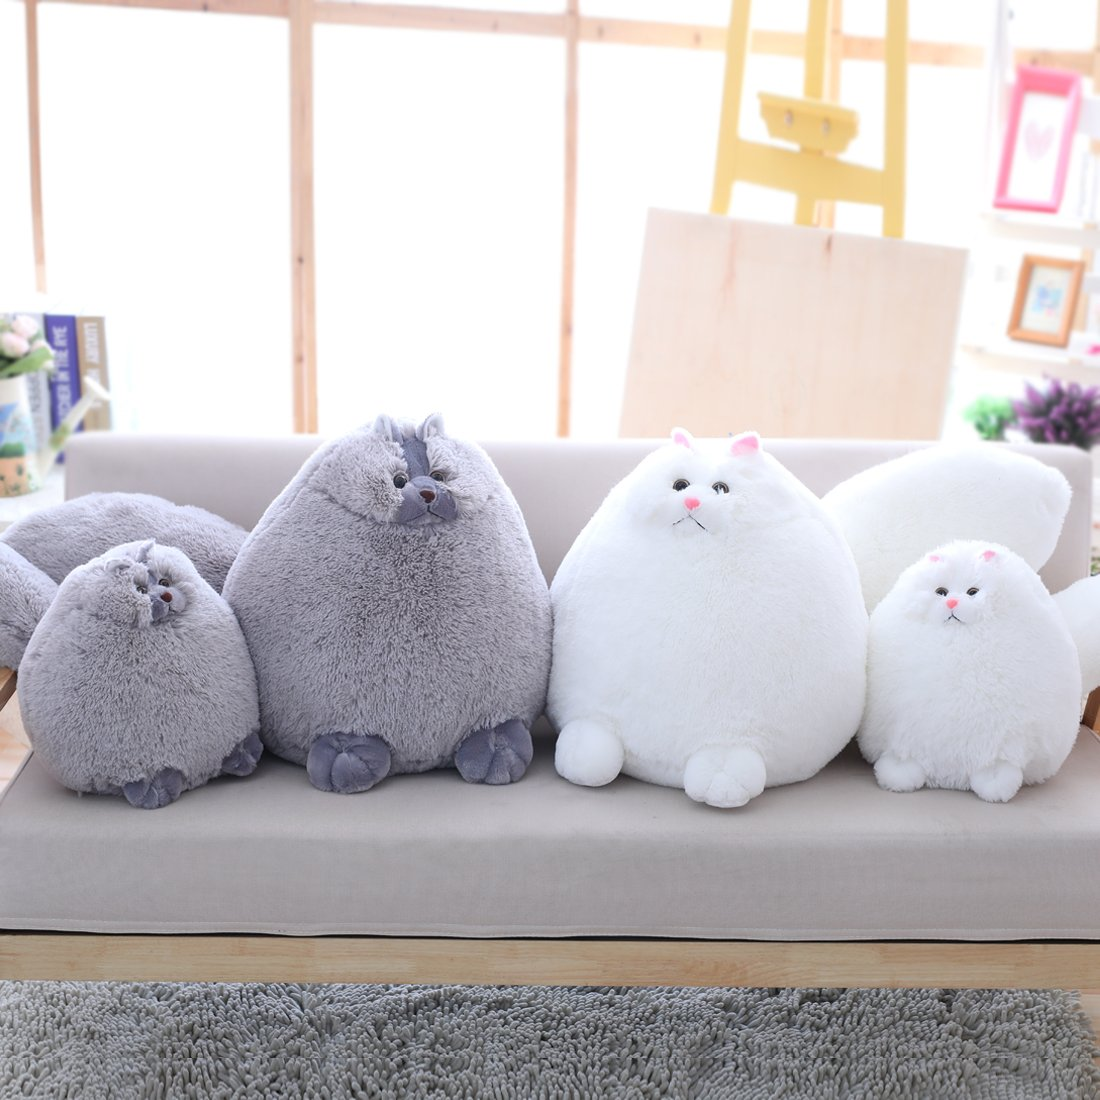 Winsterch Kids Cats Stuffed Animal Toys Birthday Gift,Plush Pillow,Gray,11.8 Inches by Winsterch (Image #7)